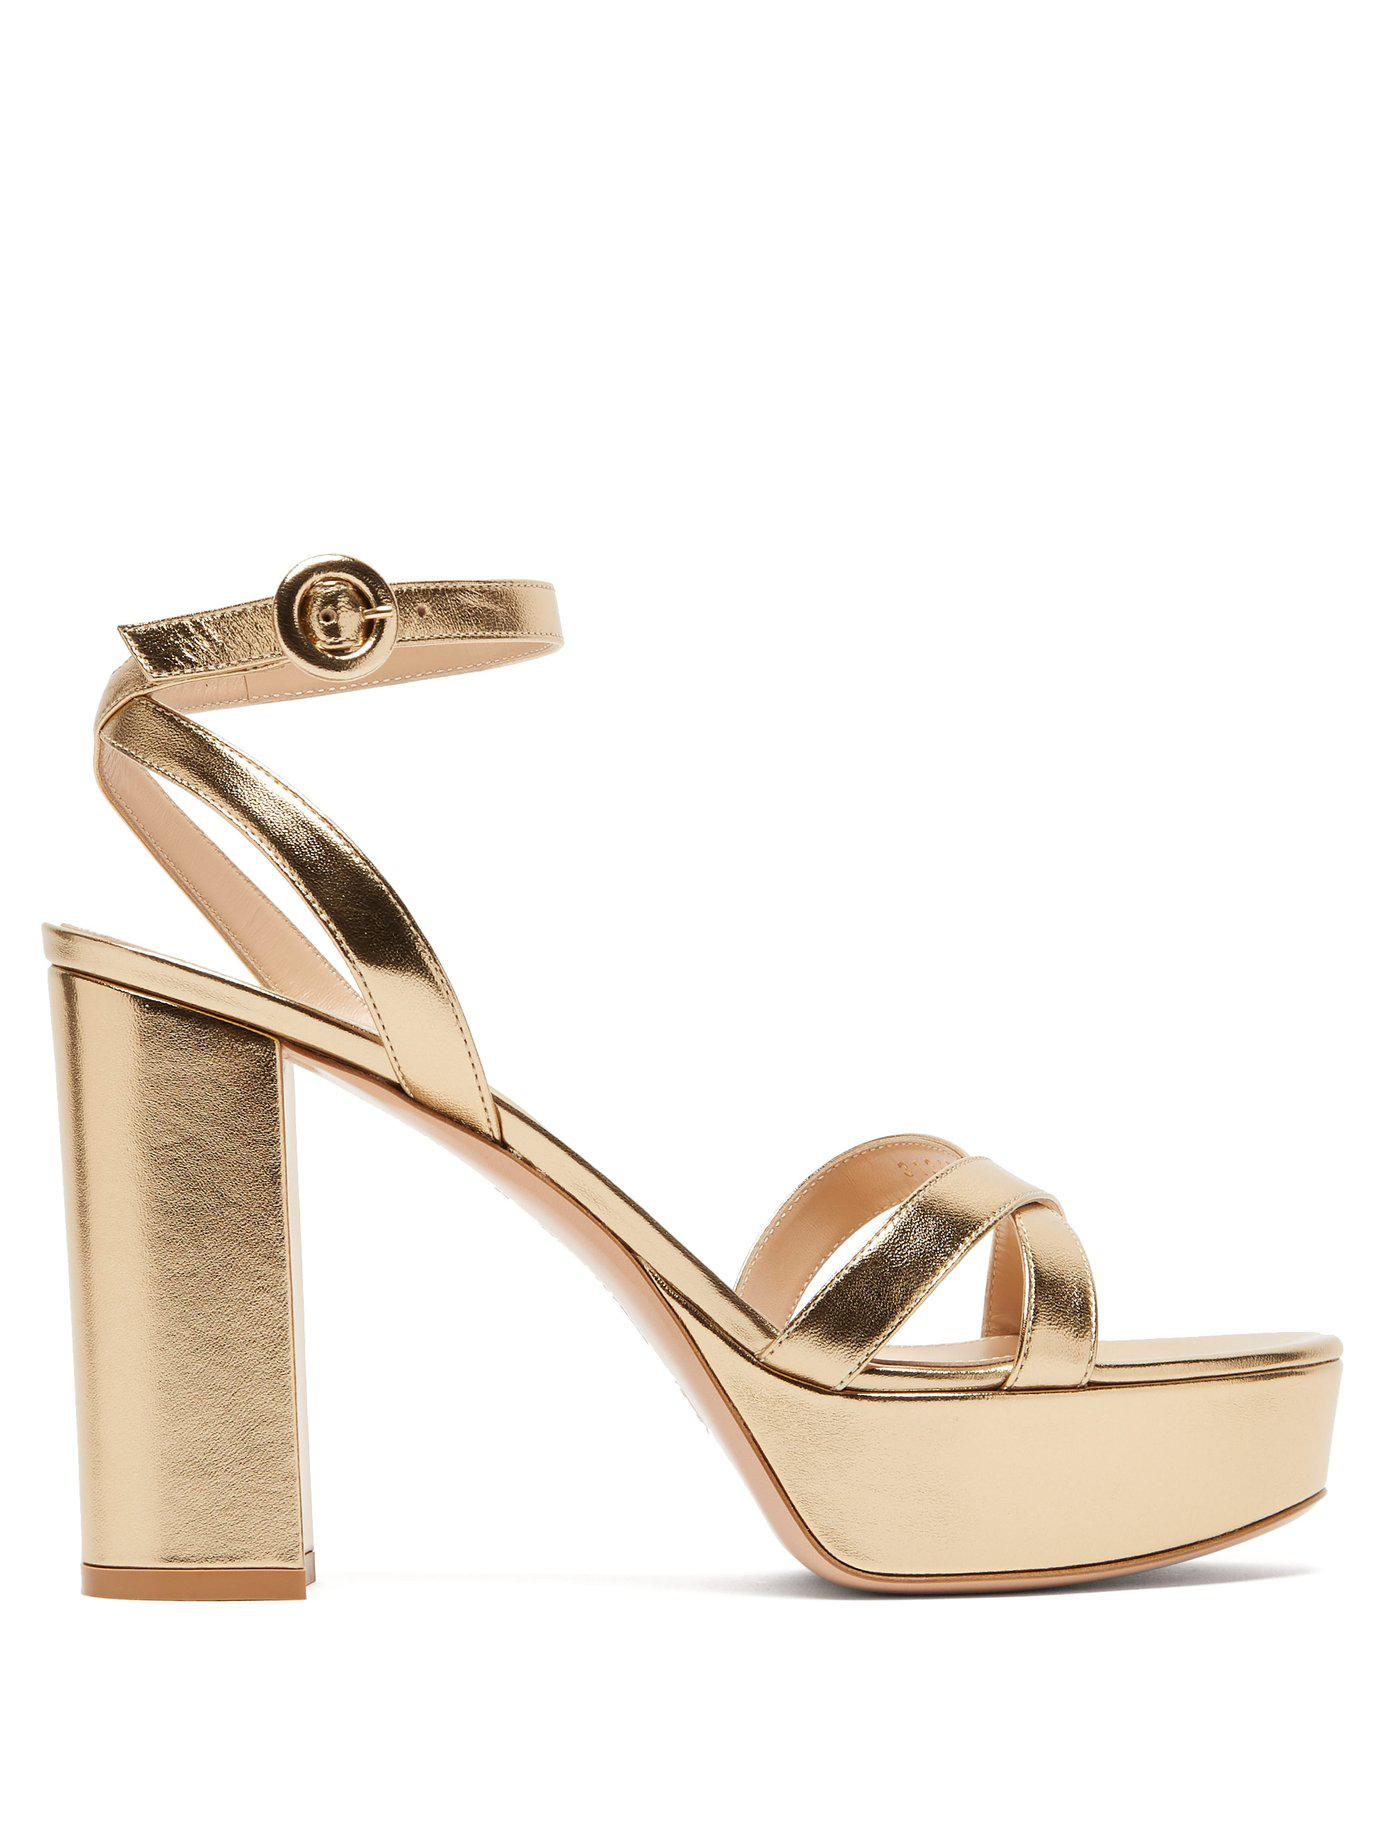 51036d86a94 Lyst - Gianvito Rossi Poppy 70 Leather Platform Sandals in Metallic